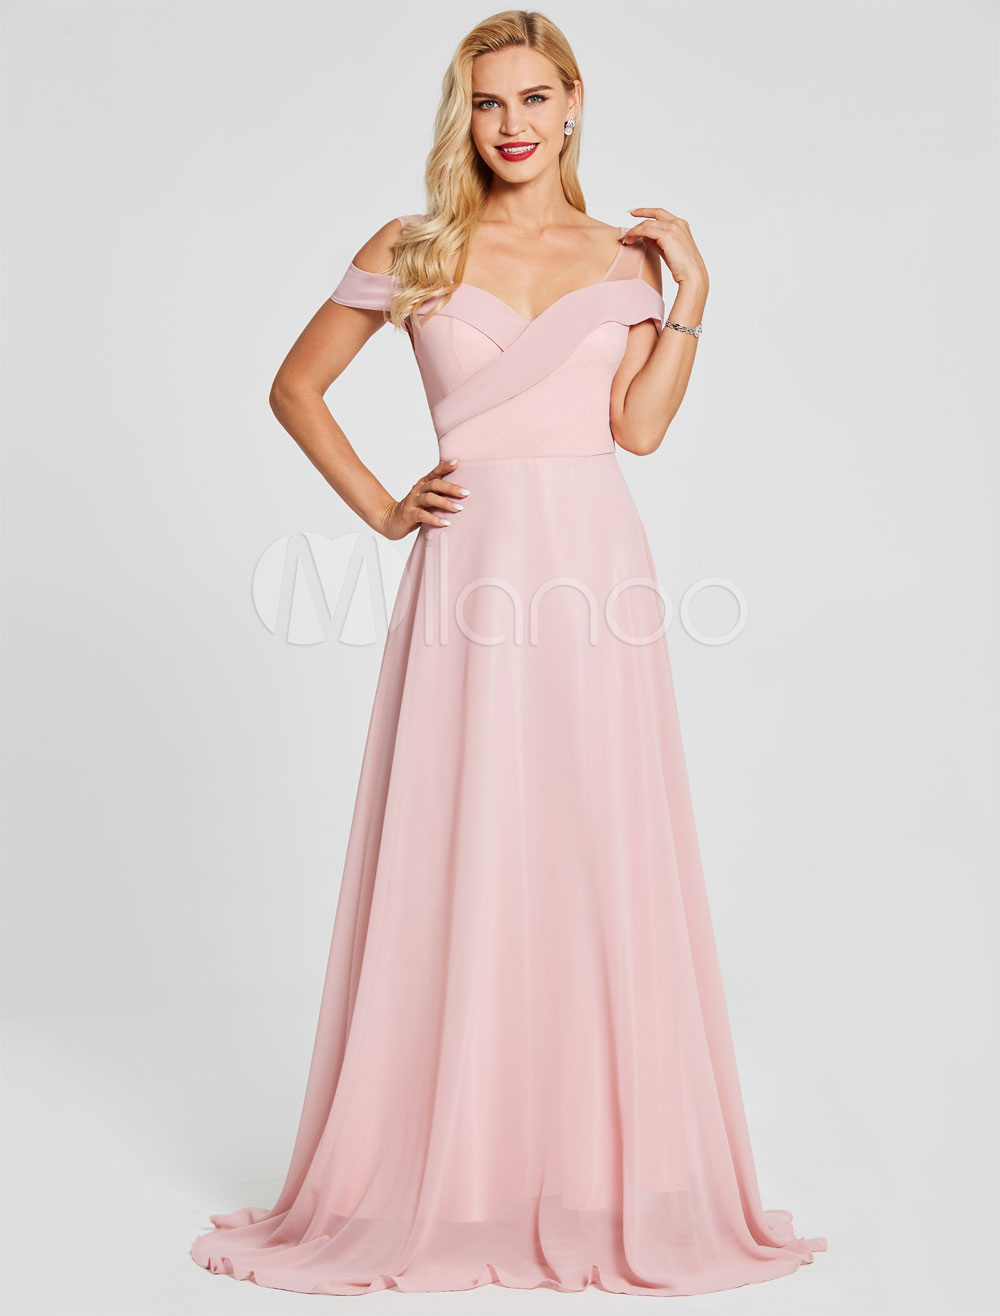 Buy Prom Dresses Long Soft Pink Chiffon Formal Gowns Cold Shoulder Floor Length Special Occasion Dress for $74.79 in Milanoo store